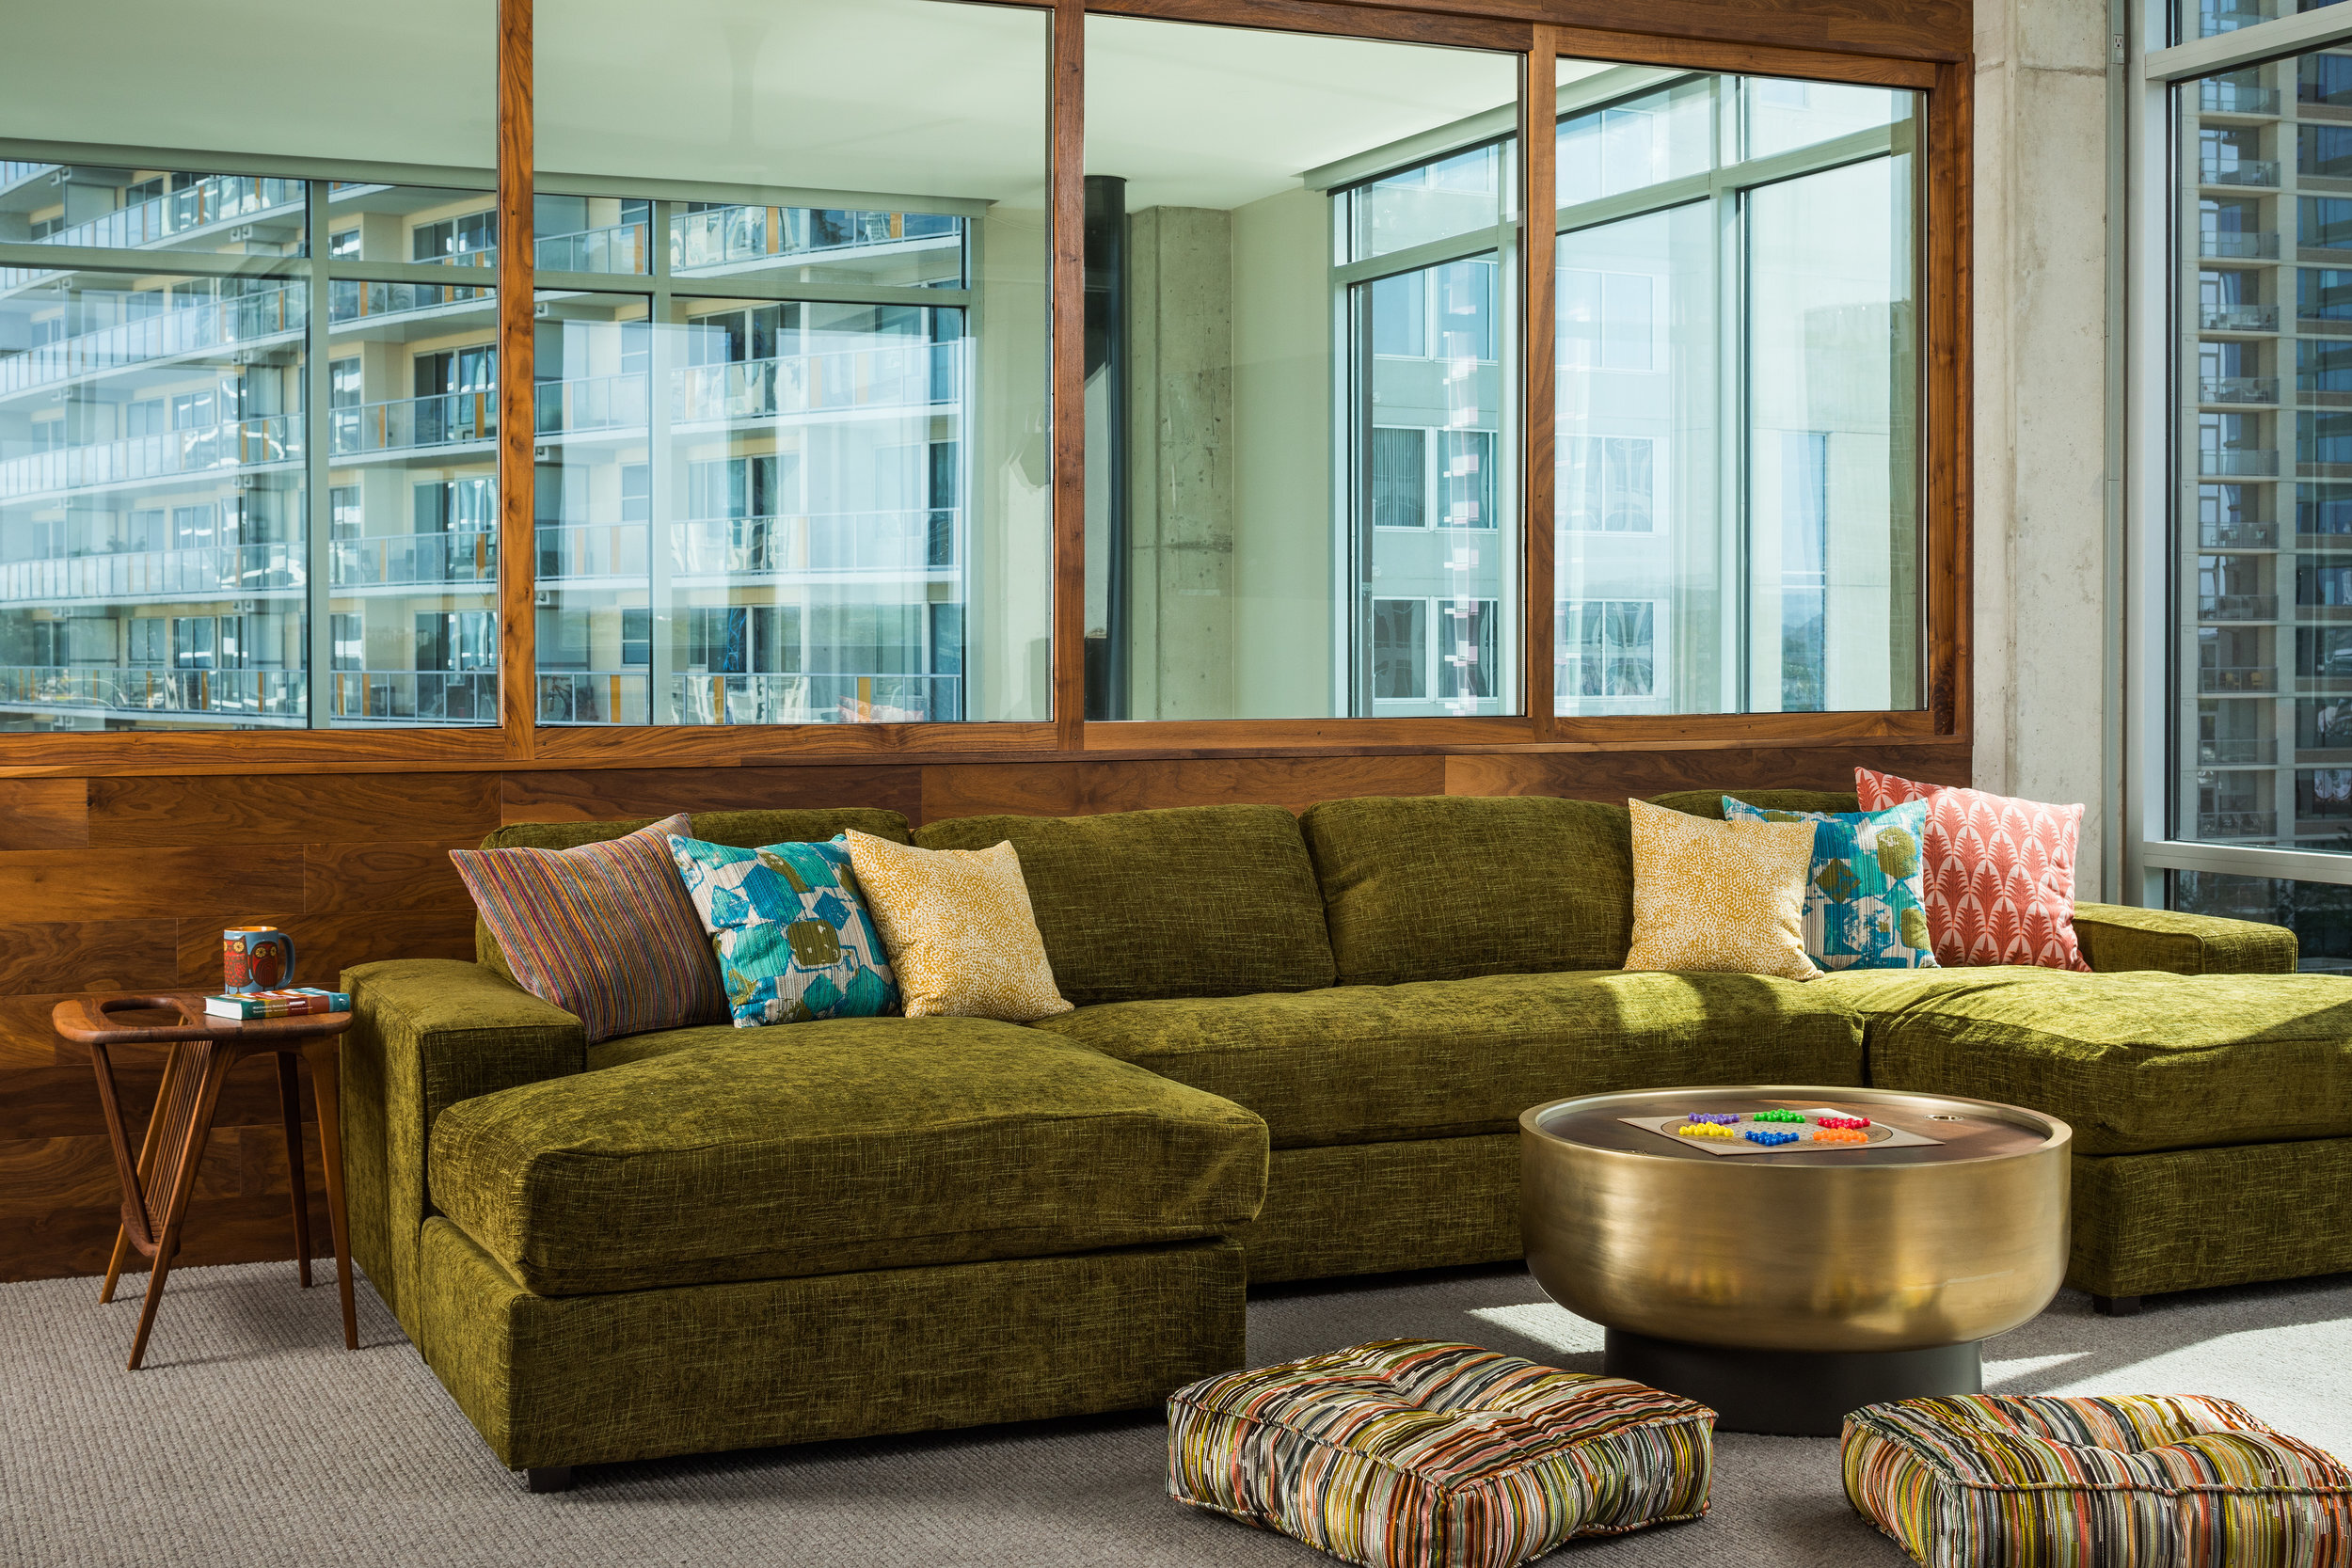 Buildasofa Custom Sofas And Sectionals Austin Tx